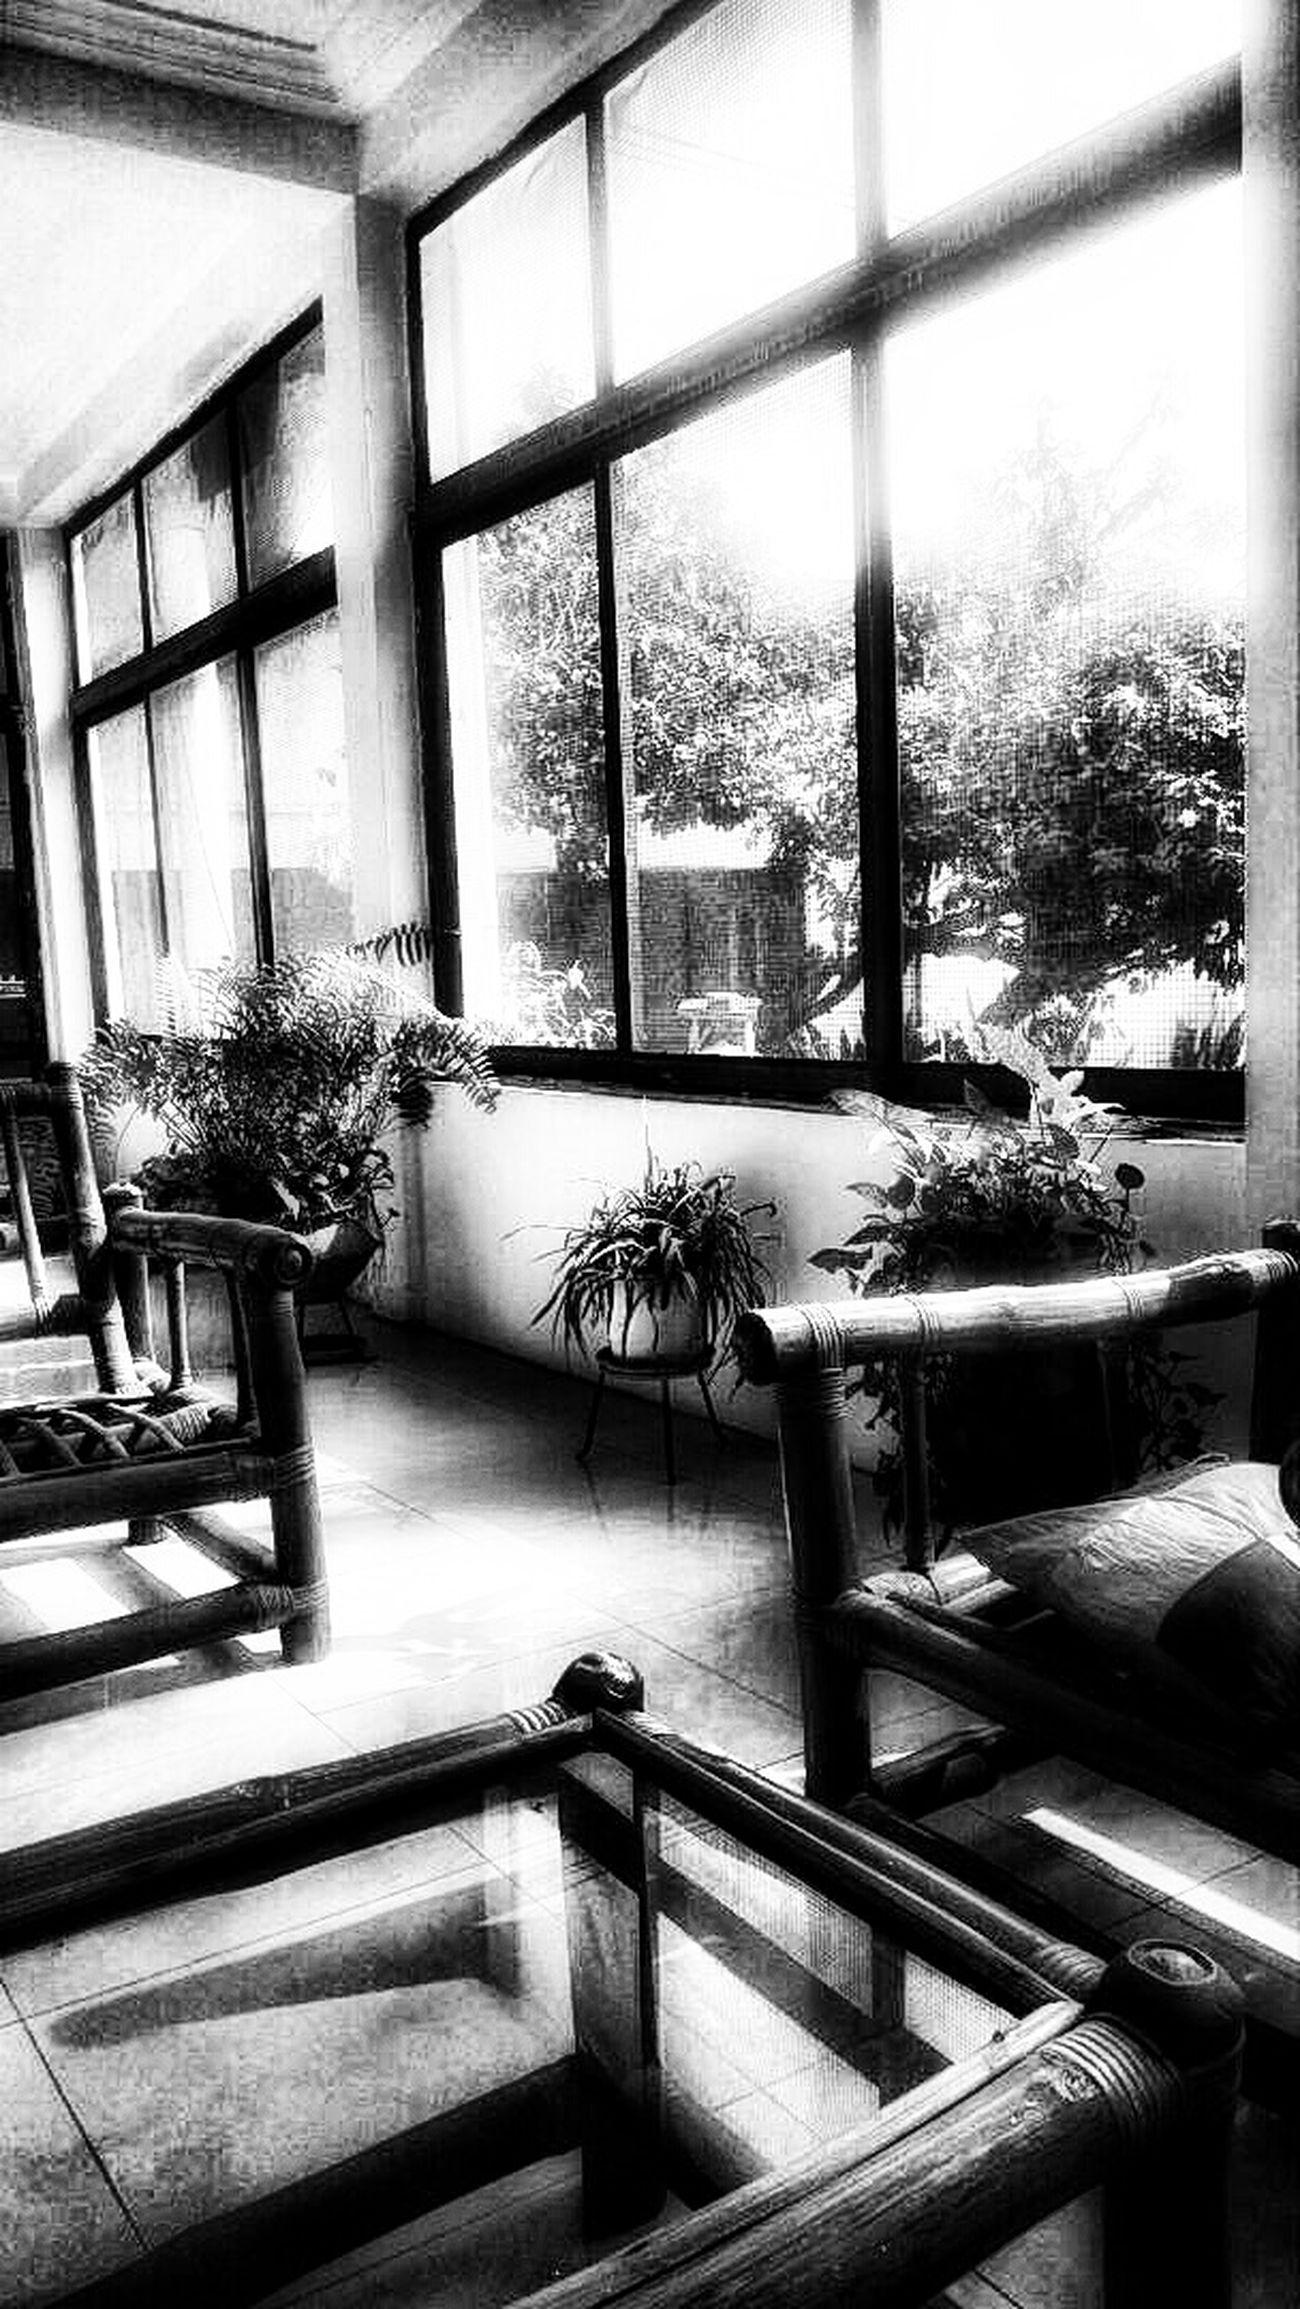 Product Sundays while the sunlight enters from all angles Indoors  No People Day Nature_collection Snapseed Tree Shadows Black And White Photography Black And White Collection  Tina Relaxation Sunlight Enjoying The View